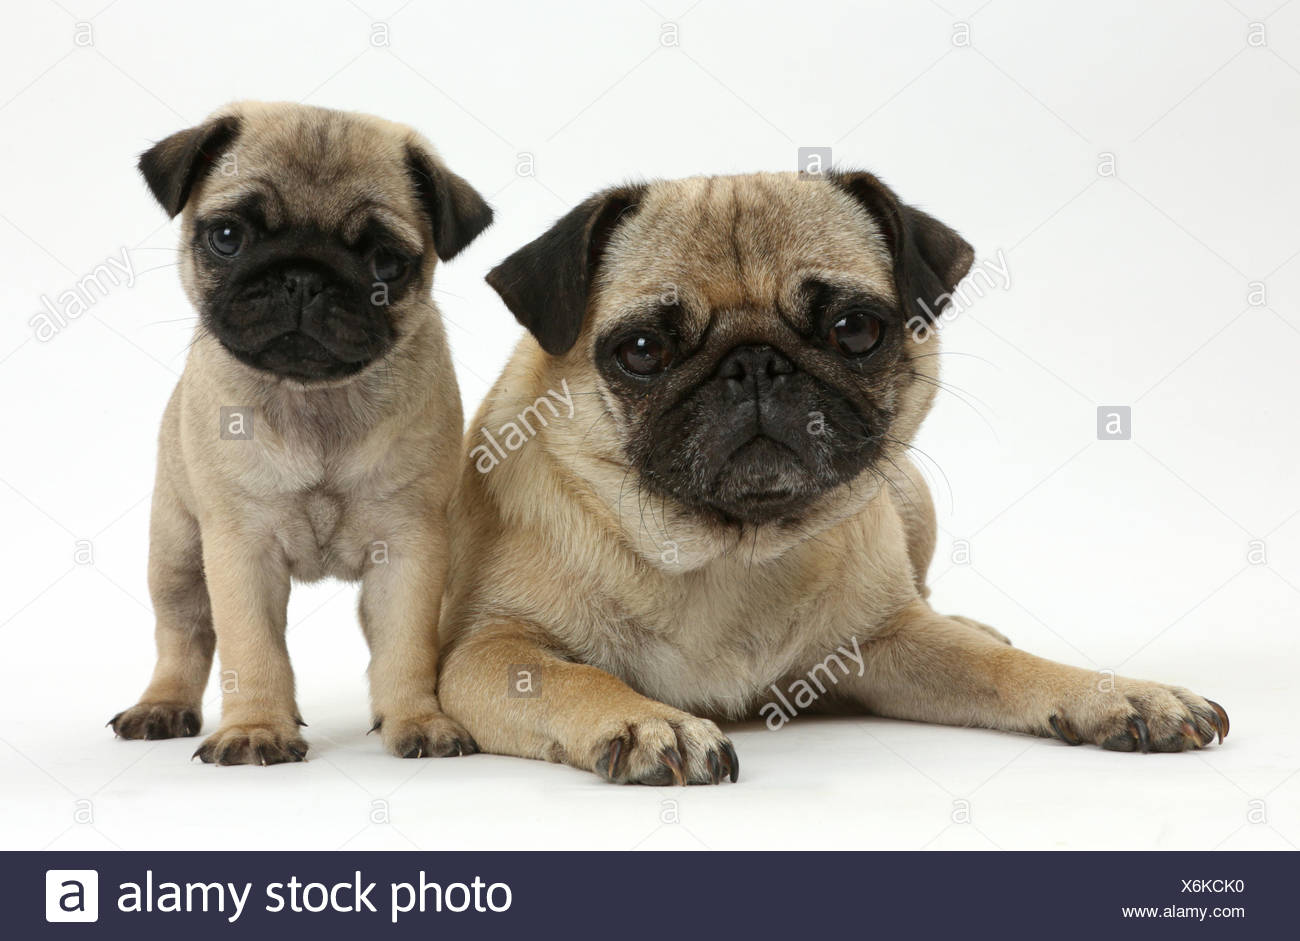 Pug mother and puppy. - Stock Image